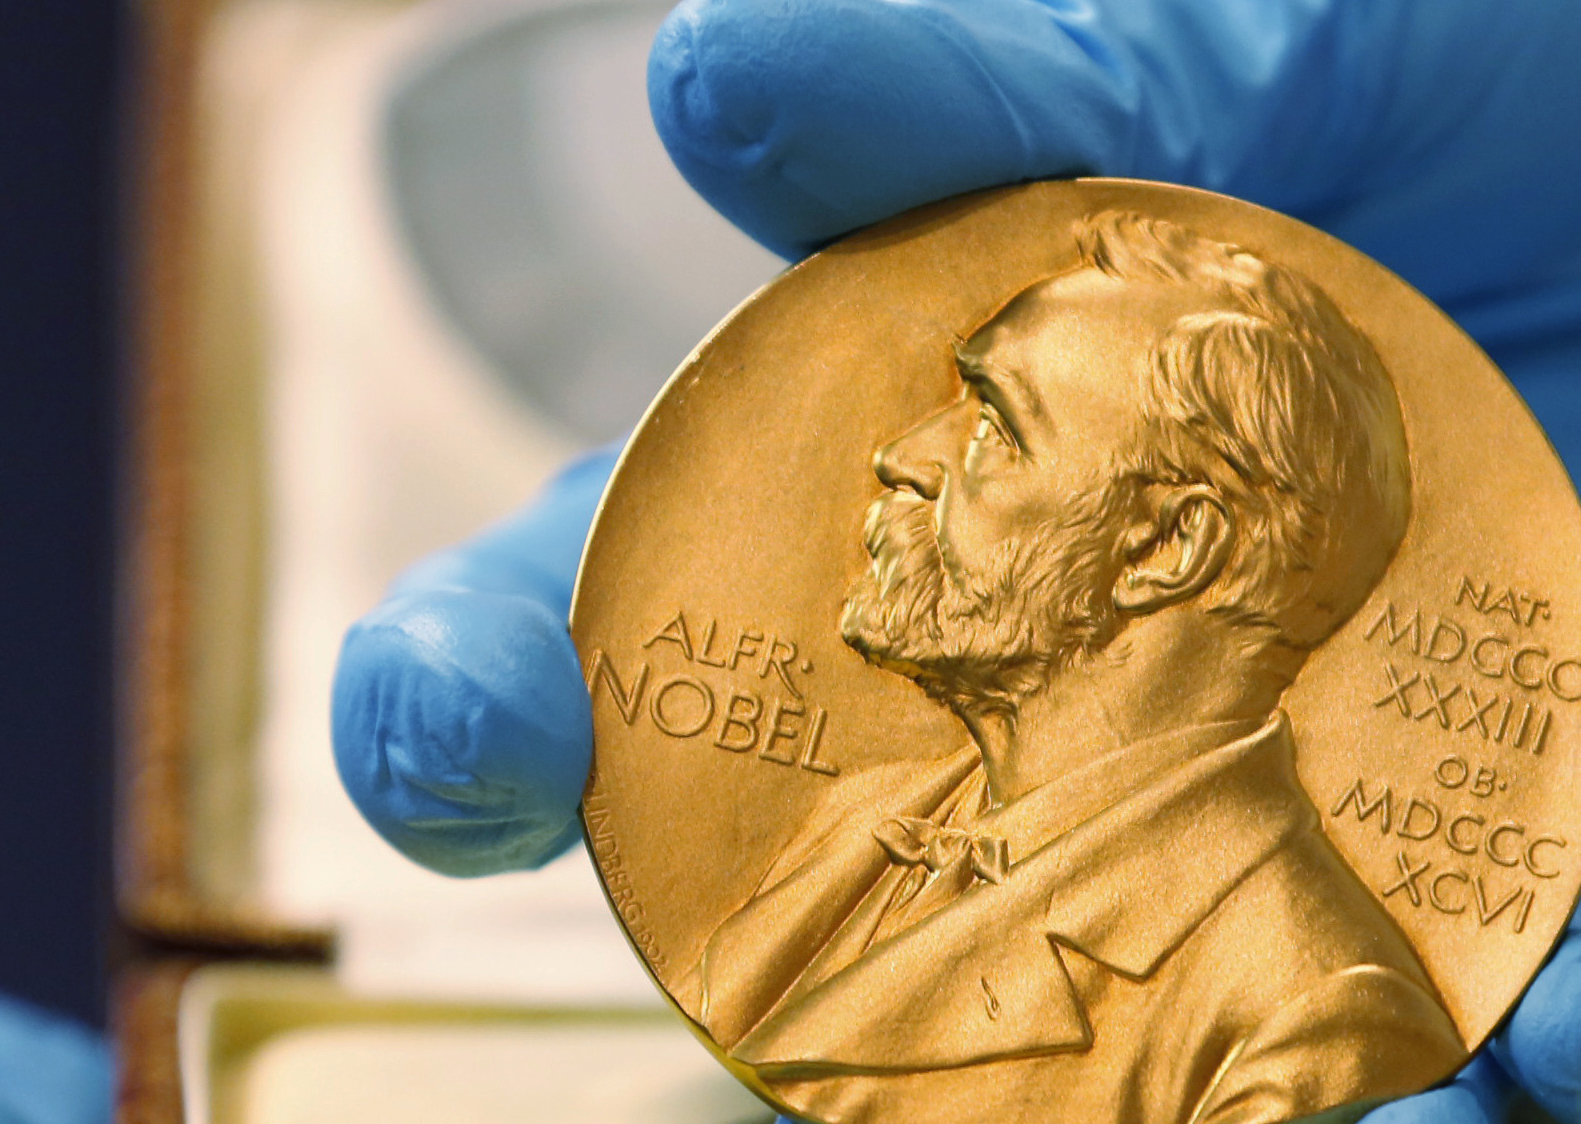 Nobel Peace Prize 2017: Here's everything you need to know